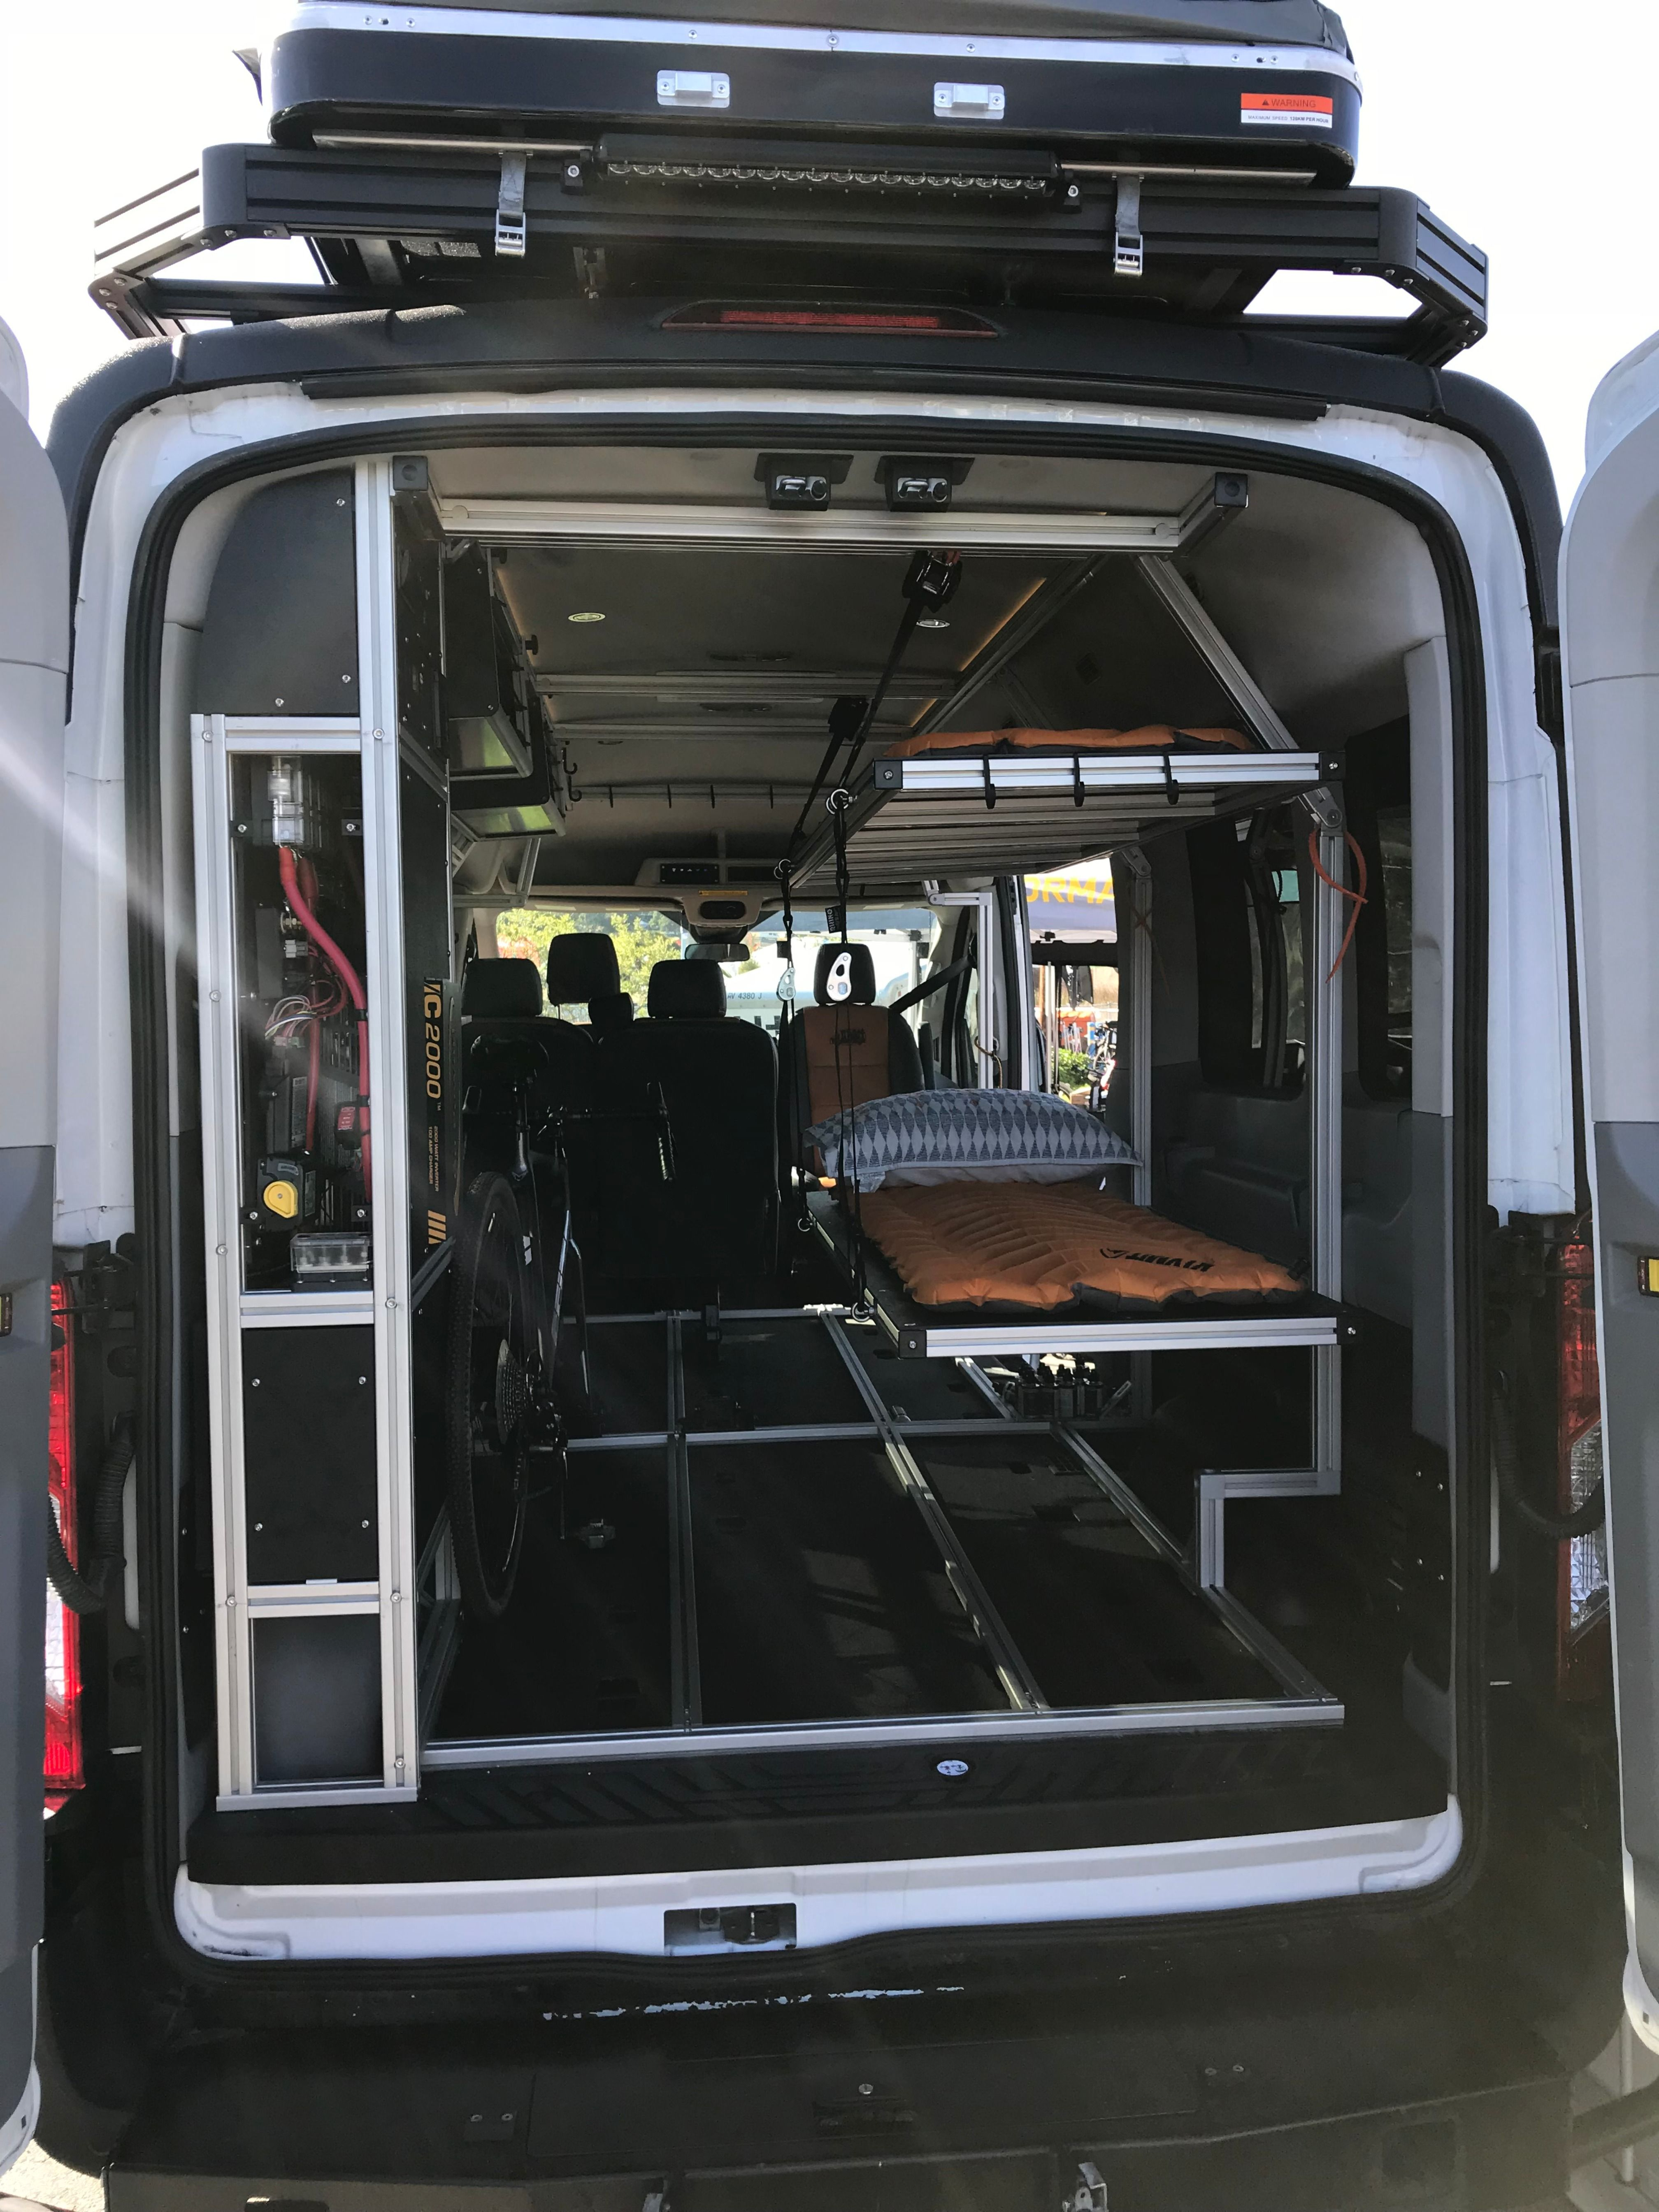 Vandoit S Do Model Is Like A Transformer With Its Drop Down Height Adjustable Bed Platforms And Ttrack Skelet Ford Transit Ford Transit Camper Transit Camper